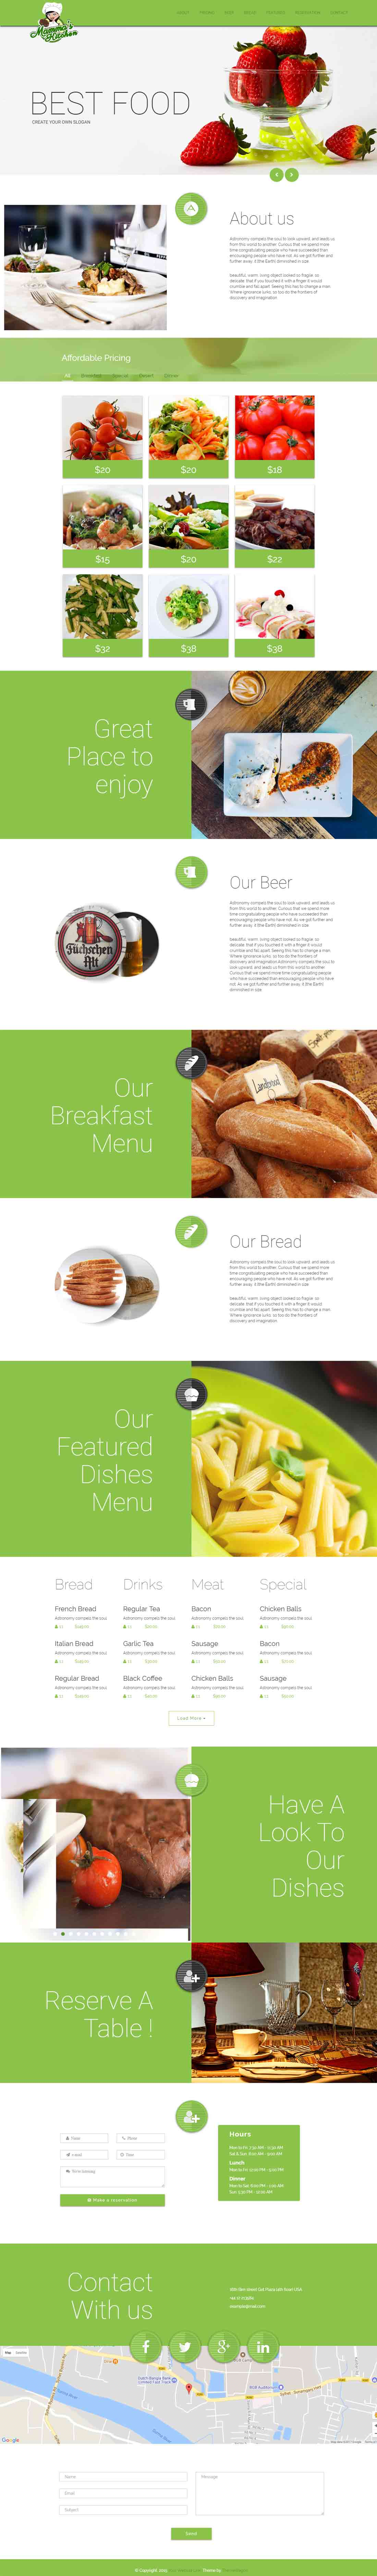 Mammas Kitchen Pro – Elegant Restaurant Website Template